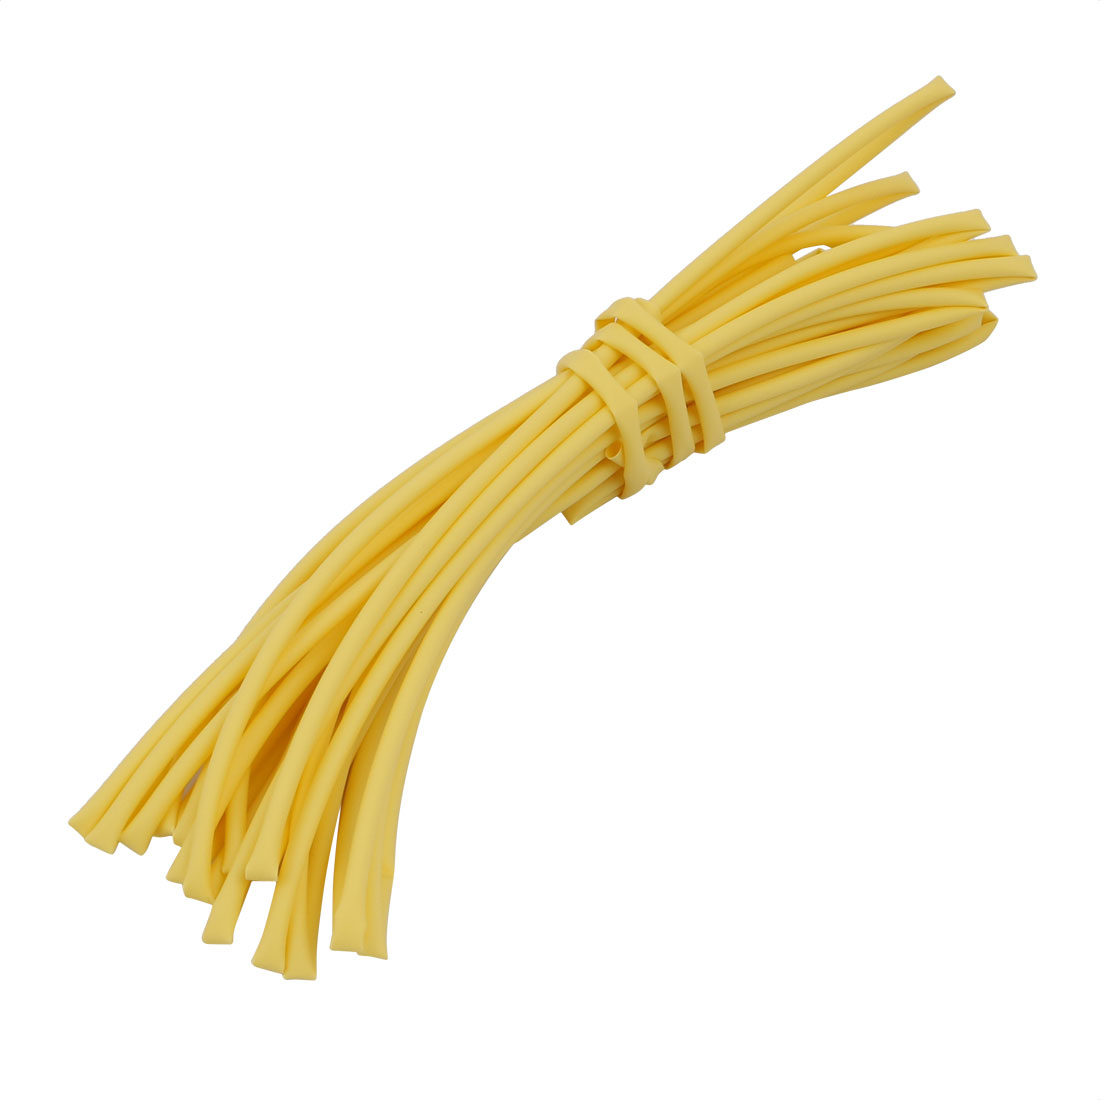 5M 0.06in Inner Dia Polyolefin Flame Retardant Tube Yellow for Wire Repairing